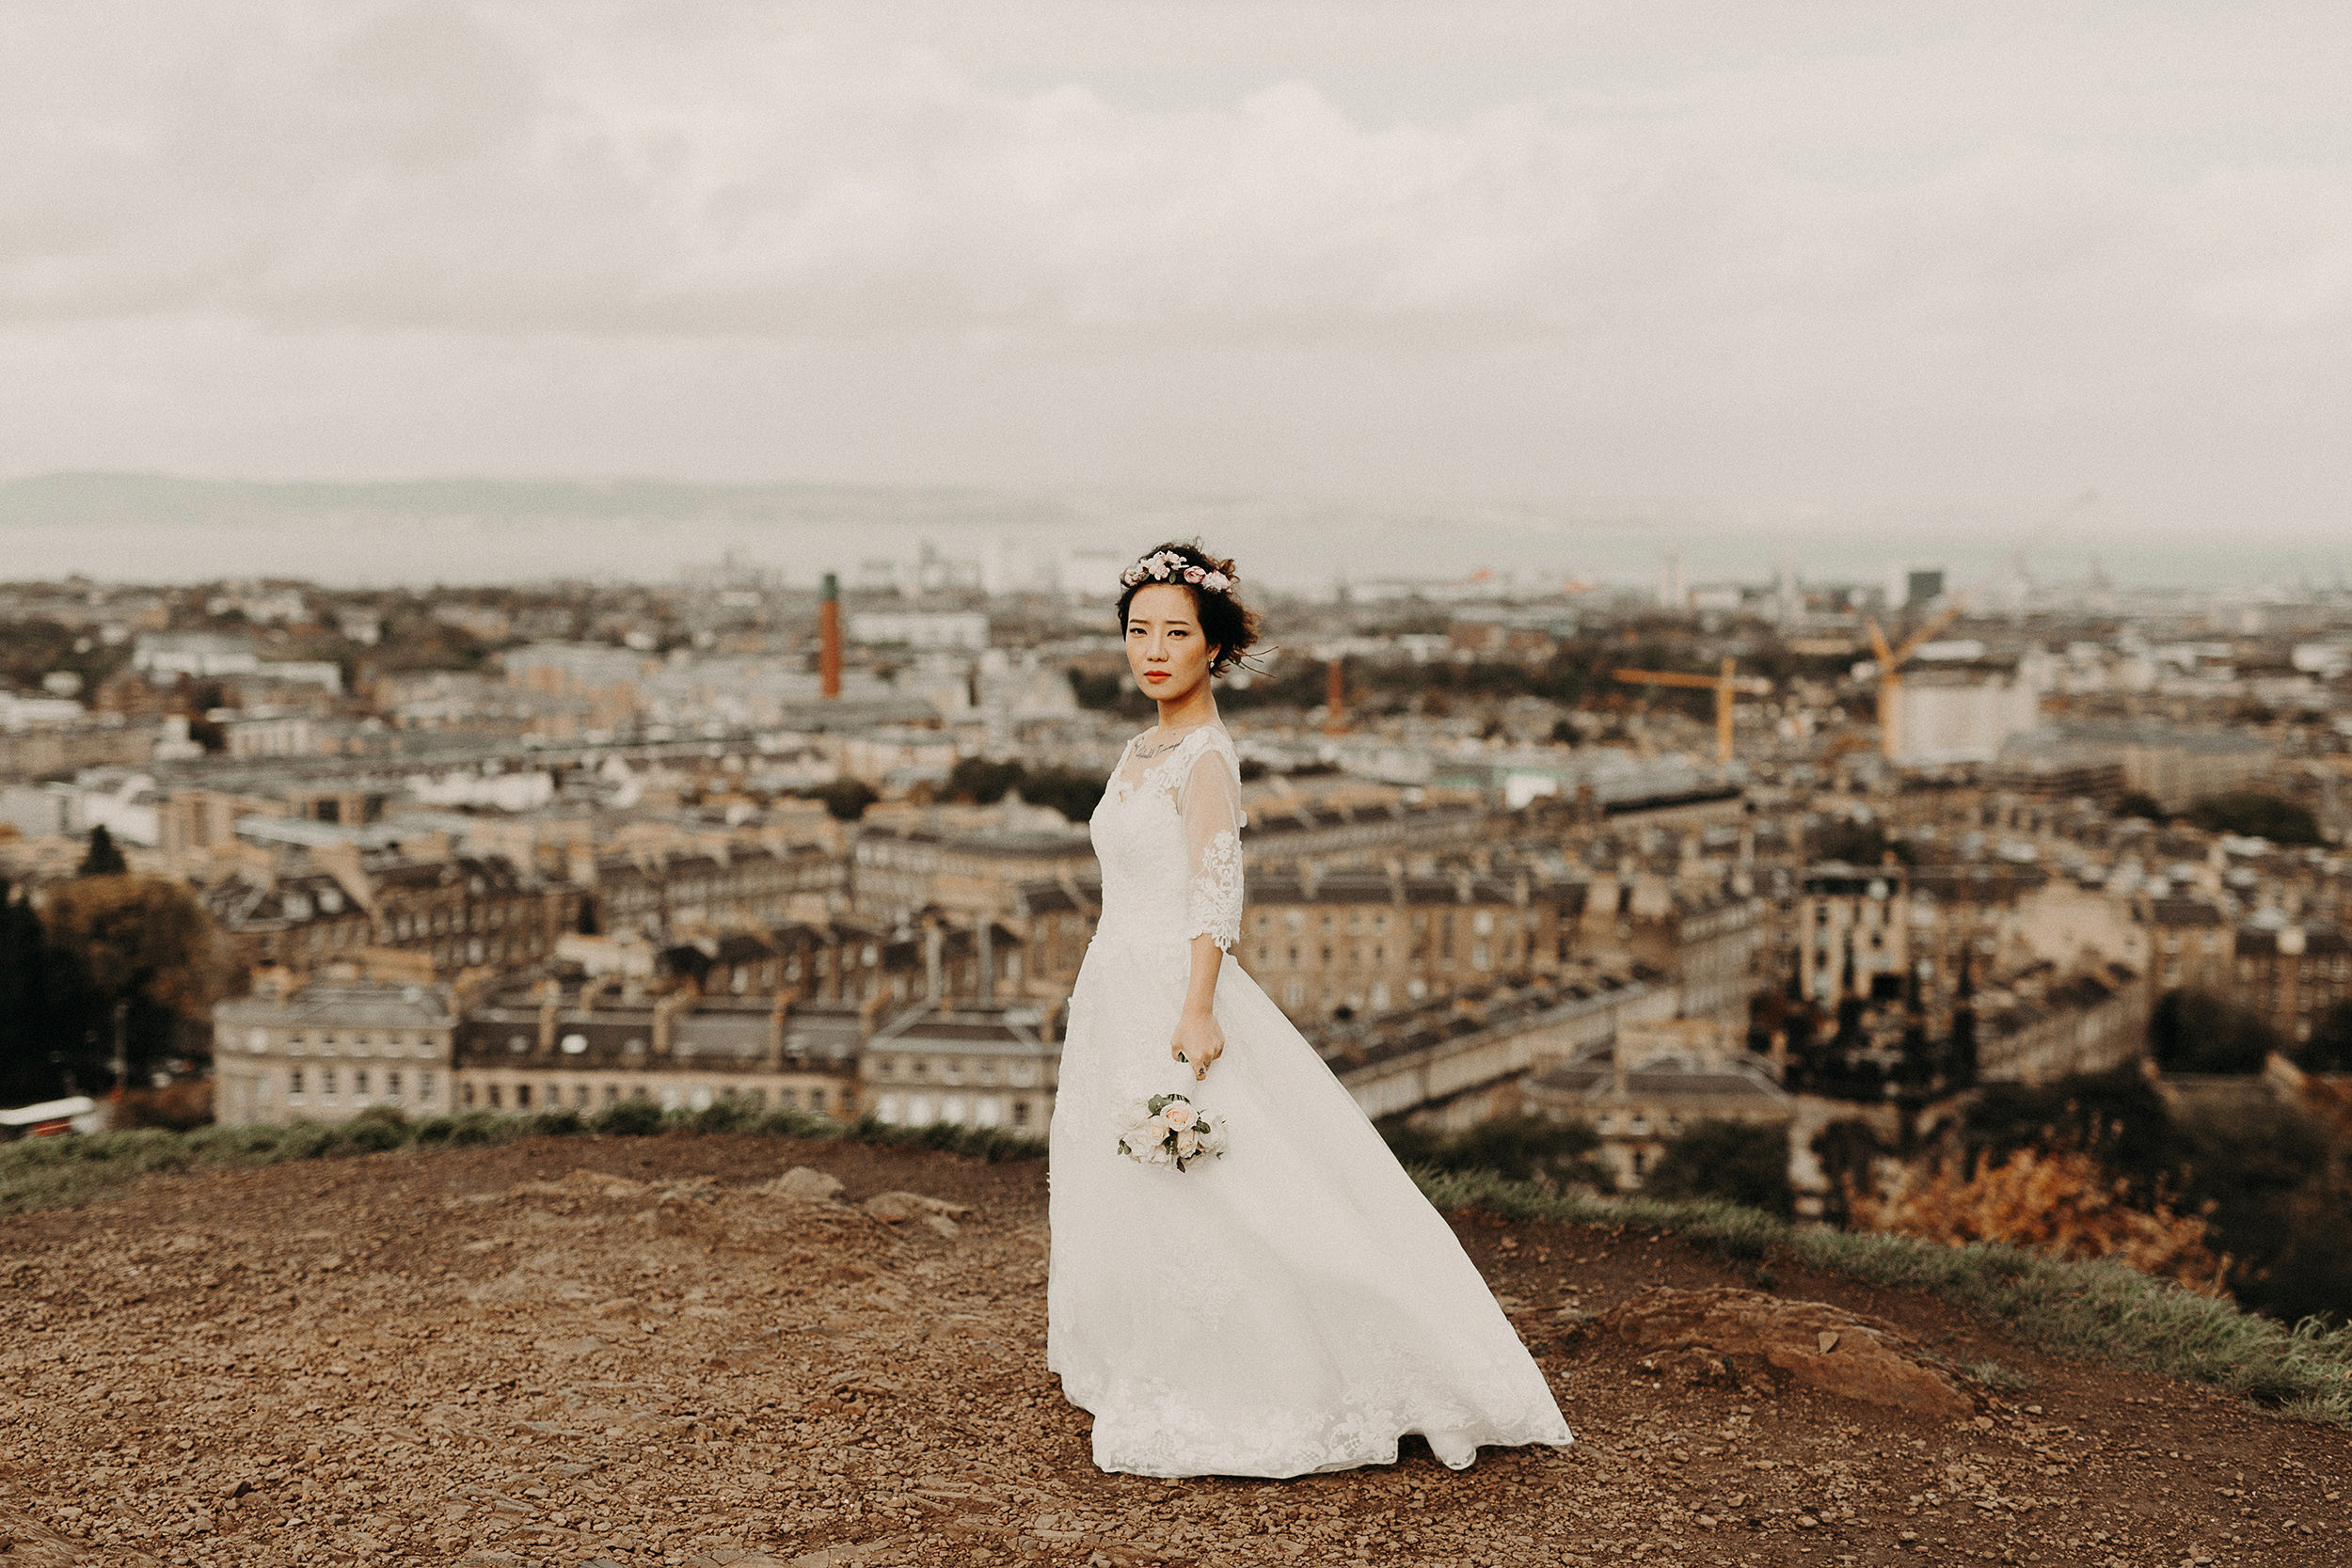 creative wedding photographer in london